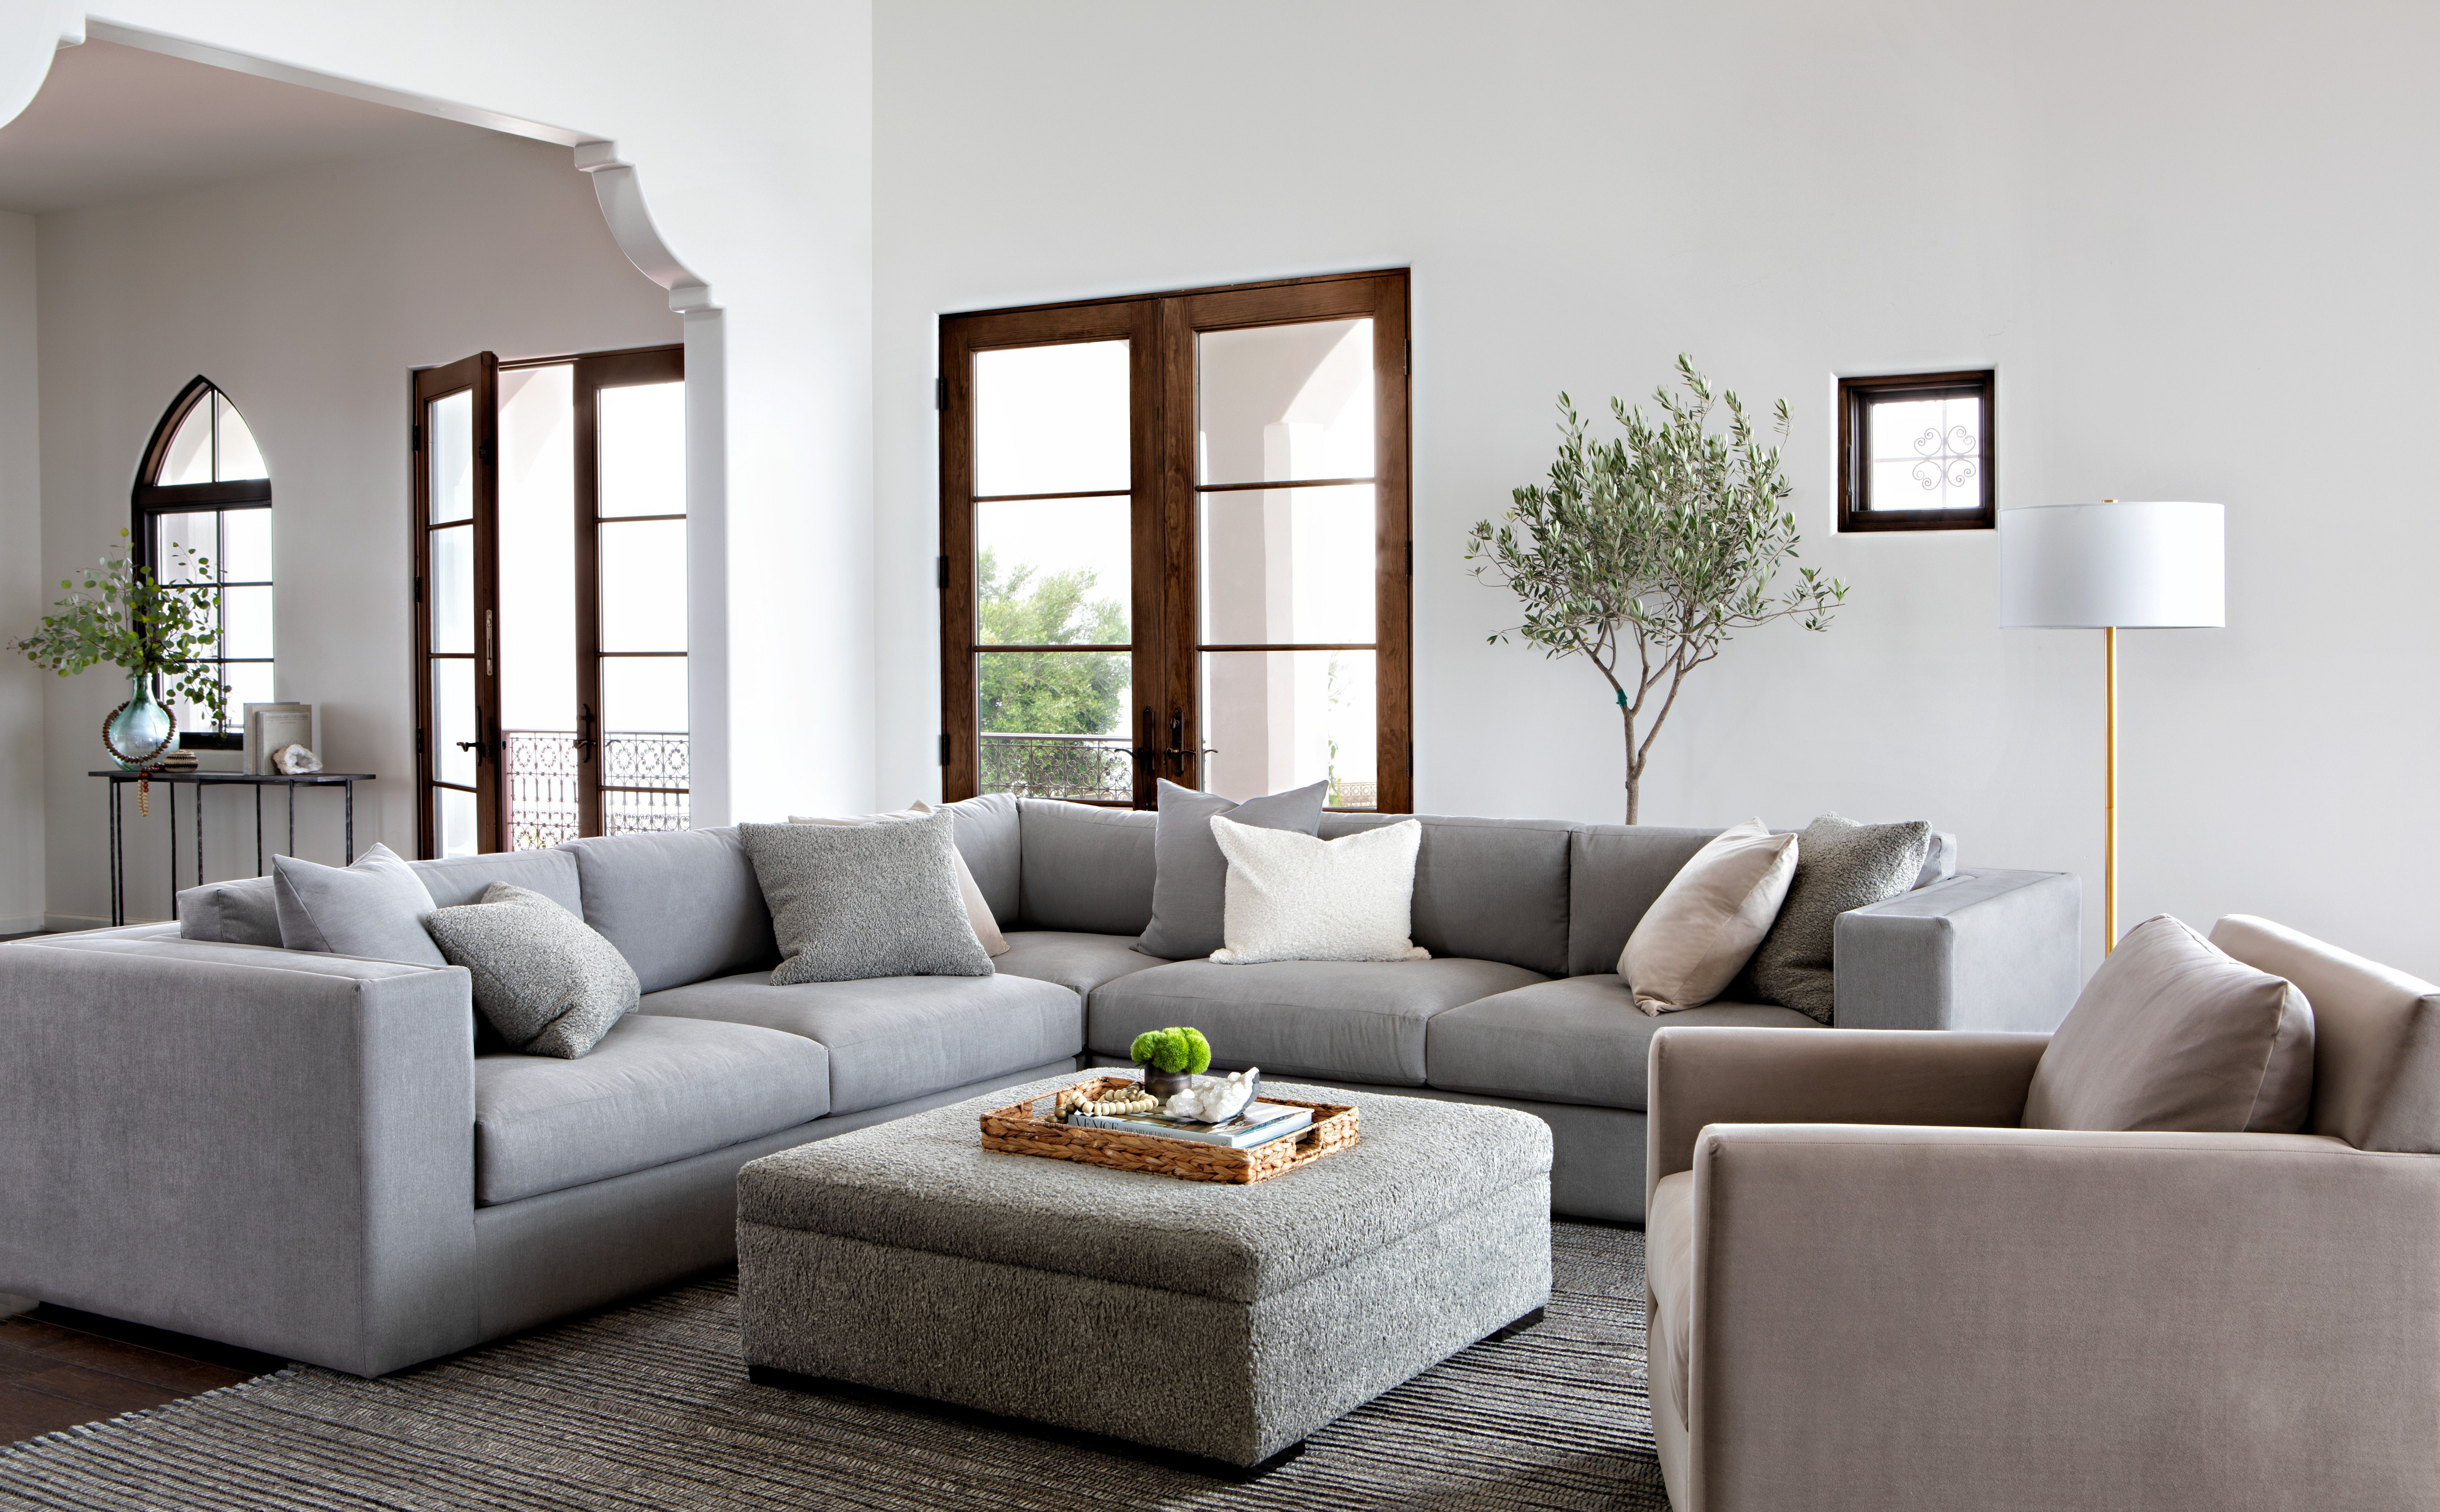 Whitley 3 Piece Sectionalnate Berkus And Jeremiah Brent | Nate + In Liv Arm Sofa Chairs By Nate Berkus And Jeremiah Brent (Image 20 of 20)